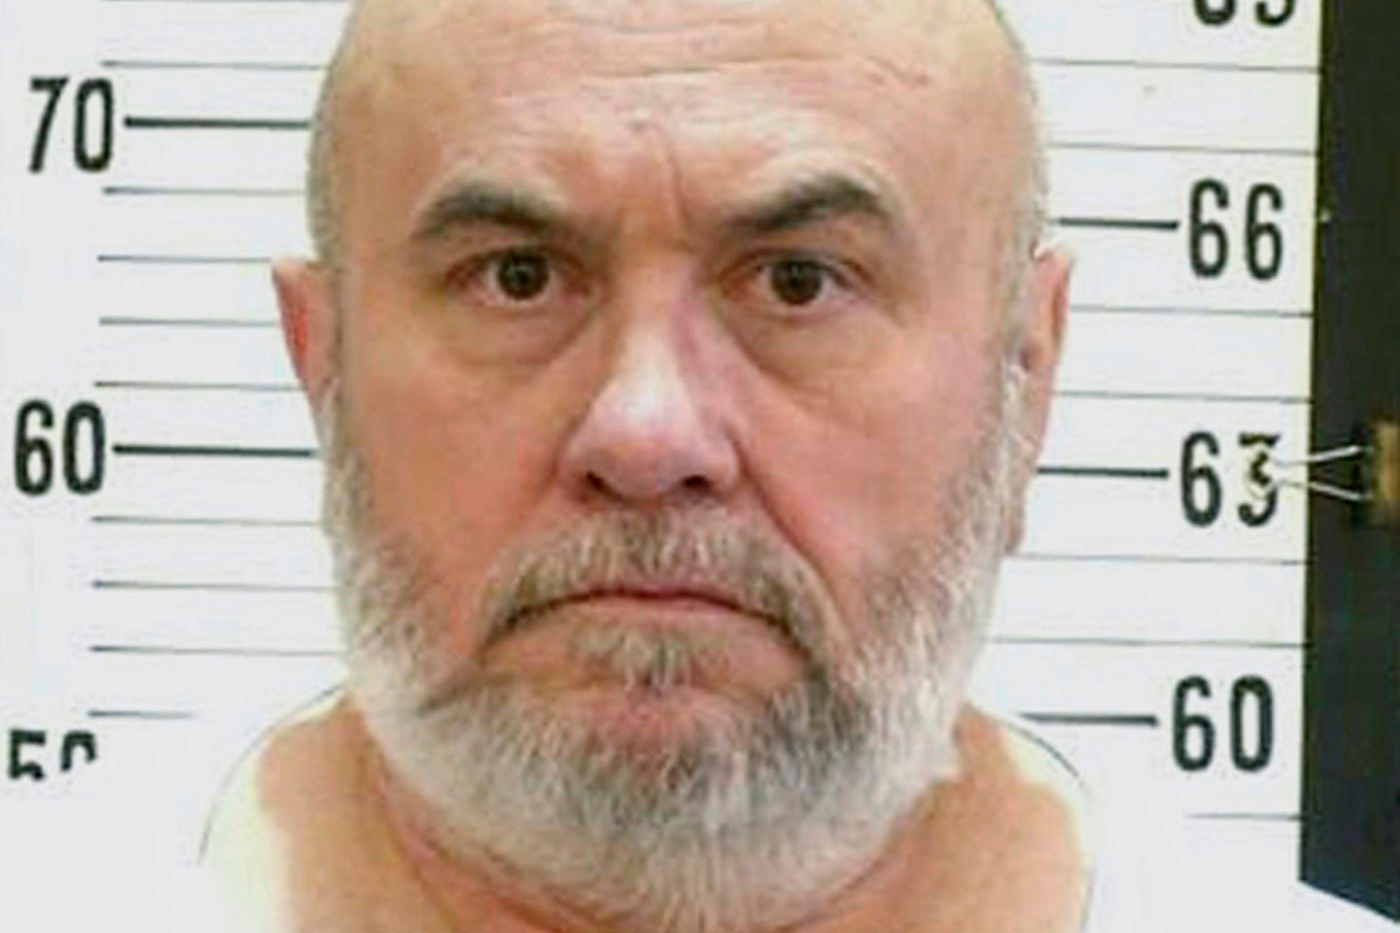 WIfe-Killer Rejects Last Meal, Asks To Give It To The Homeless Instead